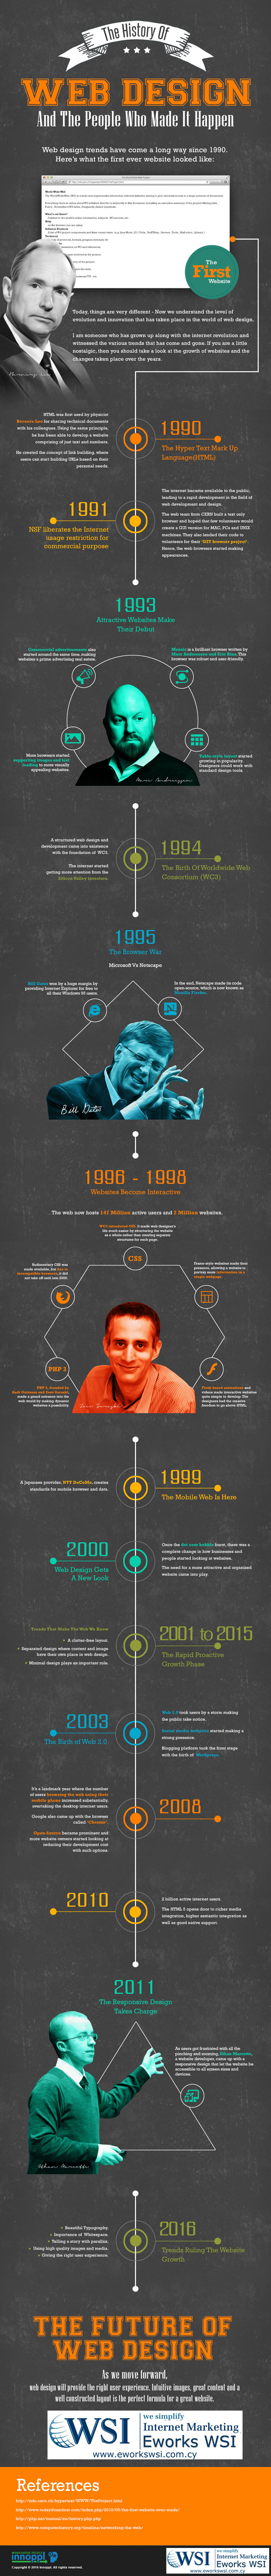 Webdesign has changed enormously the last 20 years. It followed closely the technology advances of the Internet.